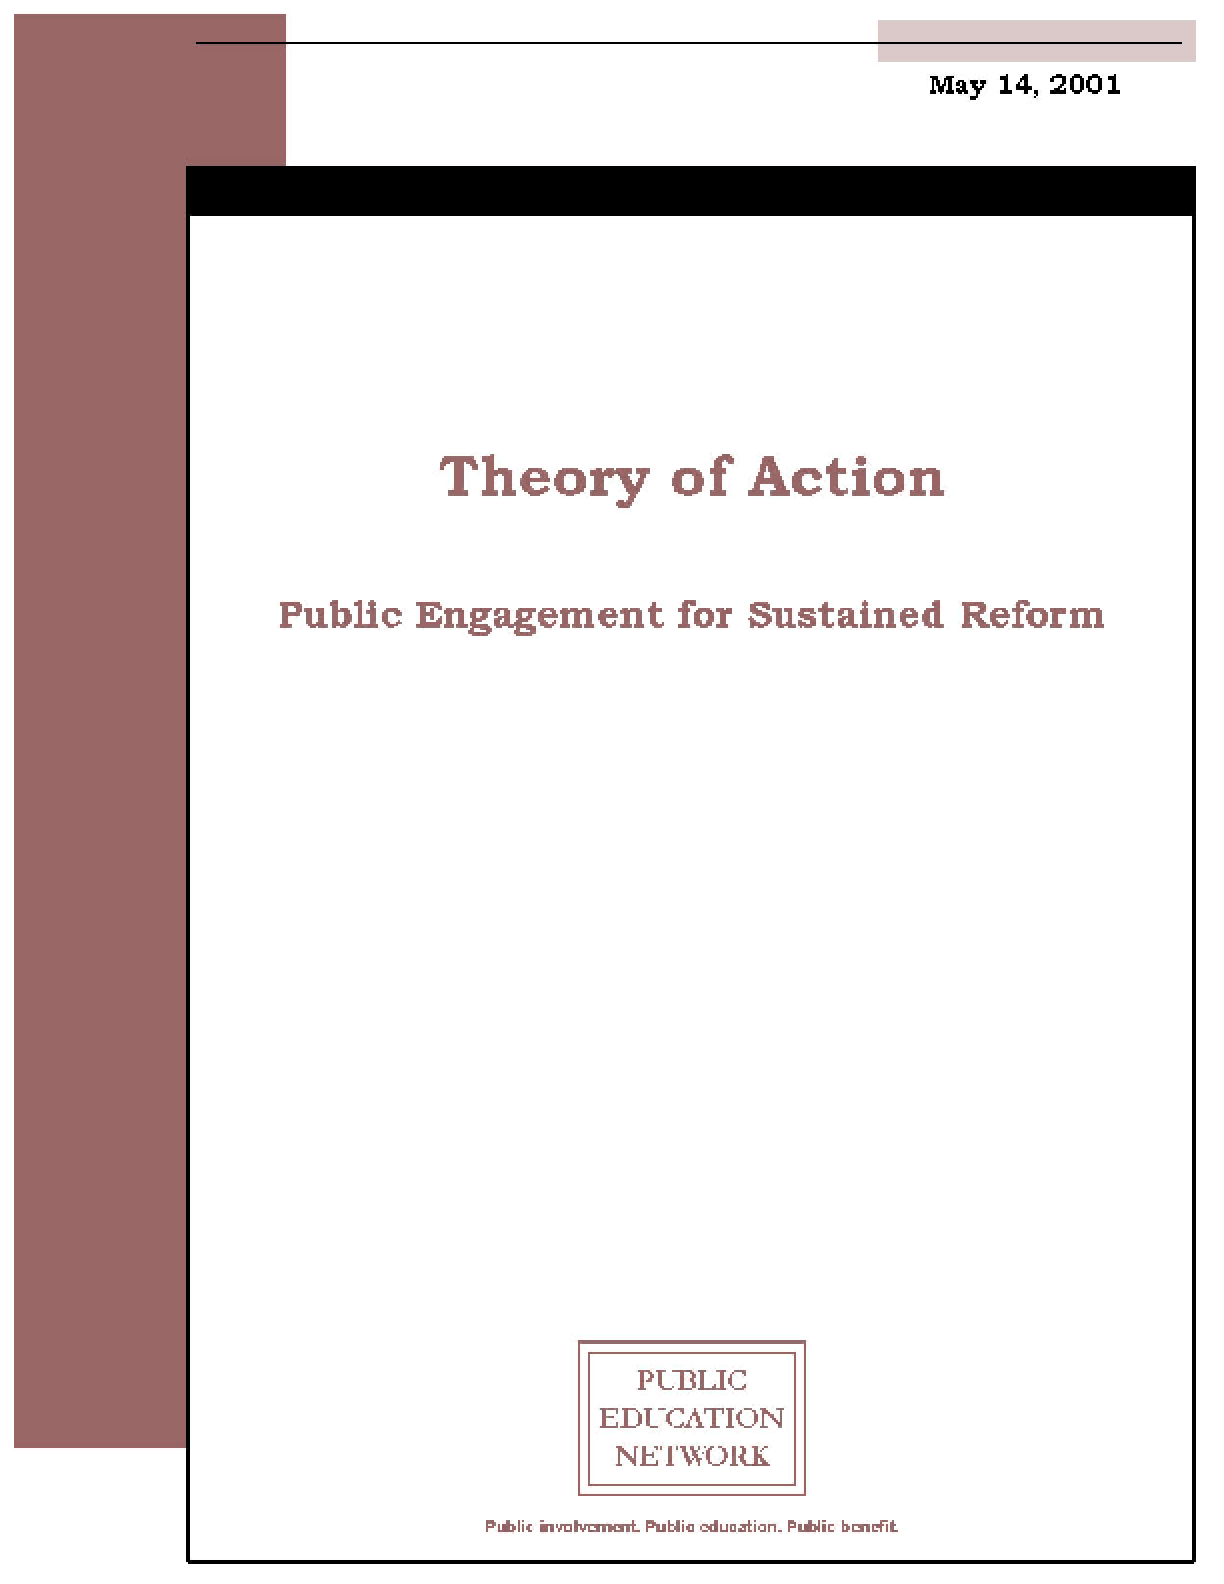 Theory of Action: Public Engagement for Sustained Reform